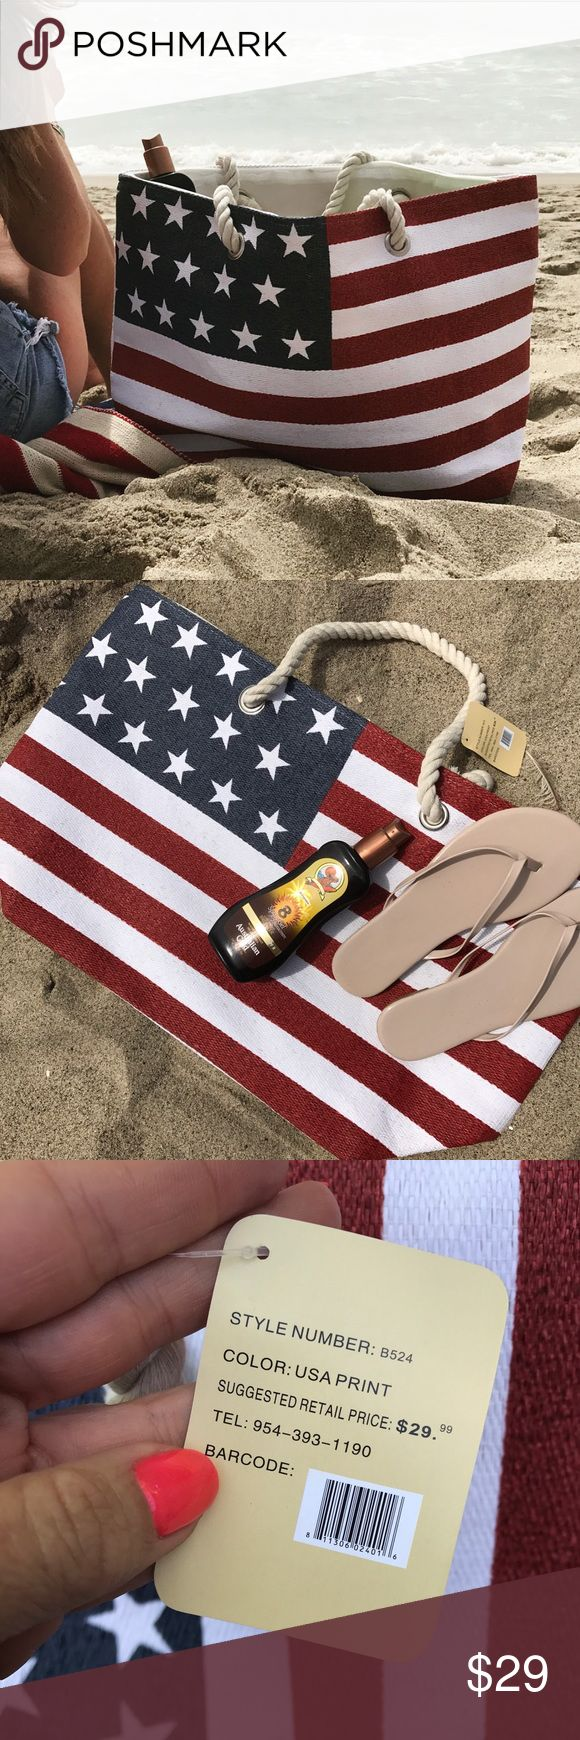 "NWT 🇺🇸 ALL AMERICAN BEACH TOTE 🏖 LARGE CAPACITY Brand NEW, TAGS ATTACHED SHIPS IN ORIGINAL PACKAGING. CLASSIC WOVEN BEACH BAG, with a big dose of AMERICANA 🇺🇸 LARGE CAPACITY Dimensions 23"" x 14"" x 8"". FULLY LINED.   Your search for the perfect summer tote is over 🏖   All man made materials. Quality you can see & feel.   Shop with POSH and save on sales tax 💰  Ships same or next day. Smoke free home.   Bundle to save. 👣❤️  Not KATE SPADE brand. Listed for exposure. kate spade Bags"